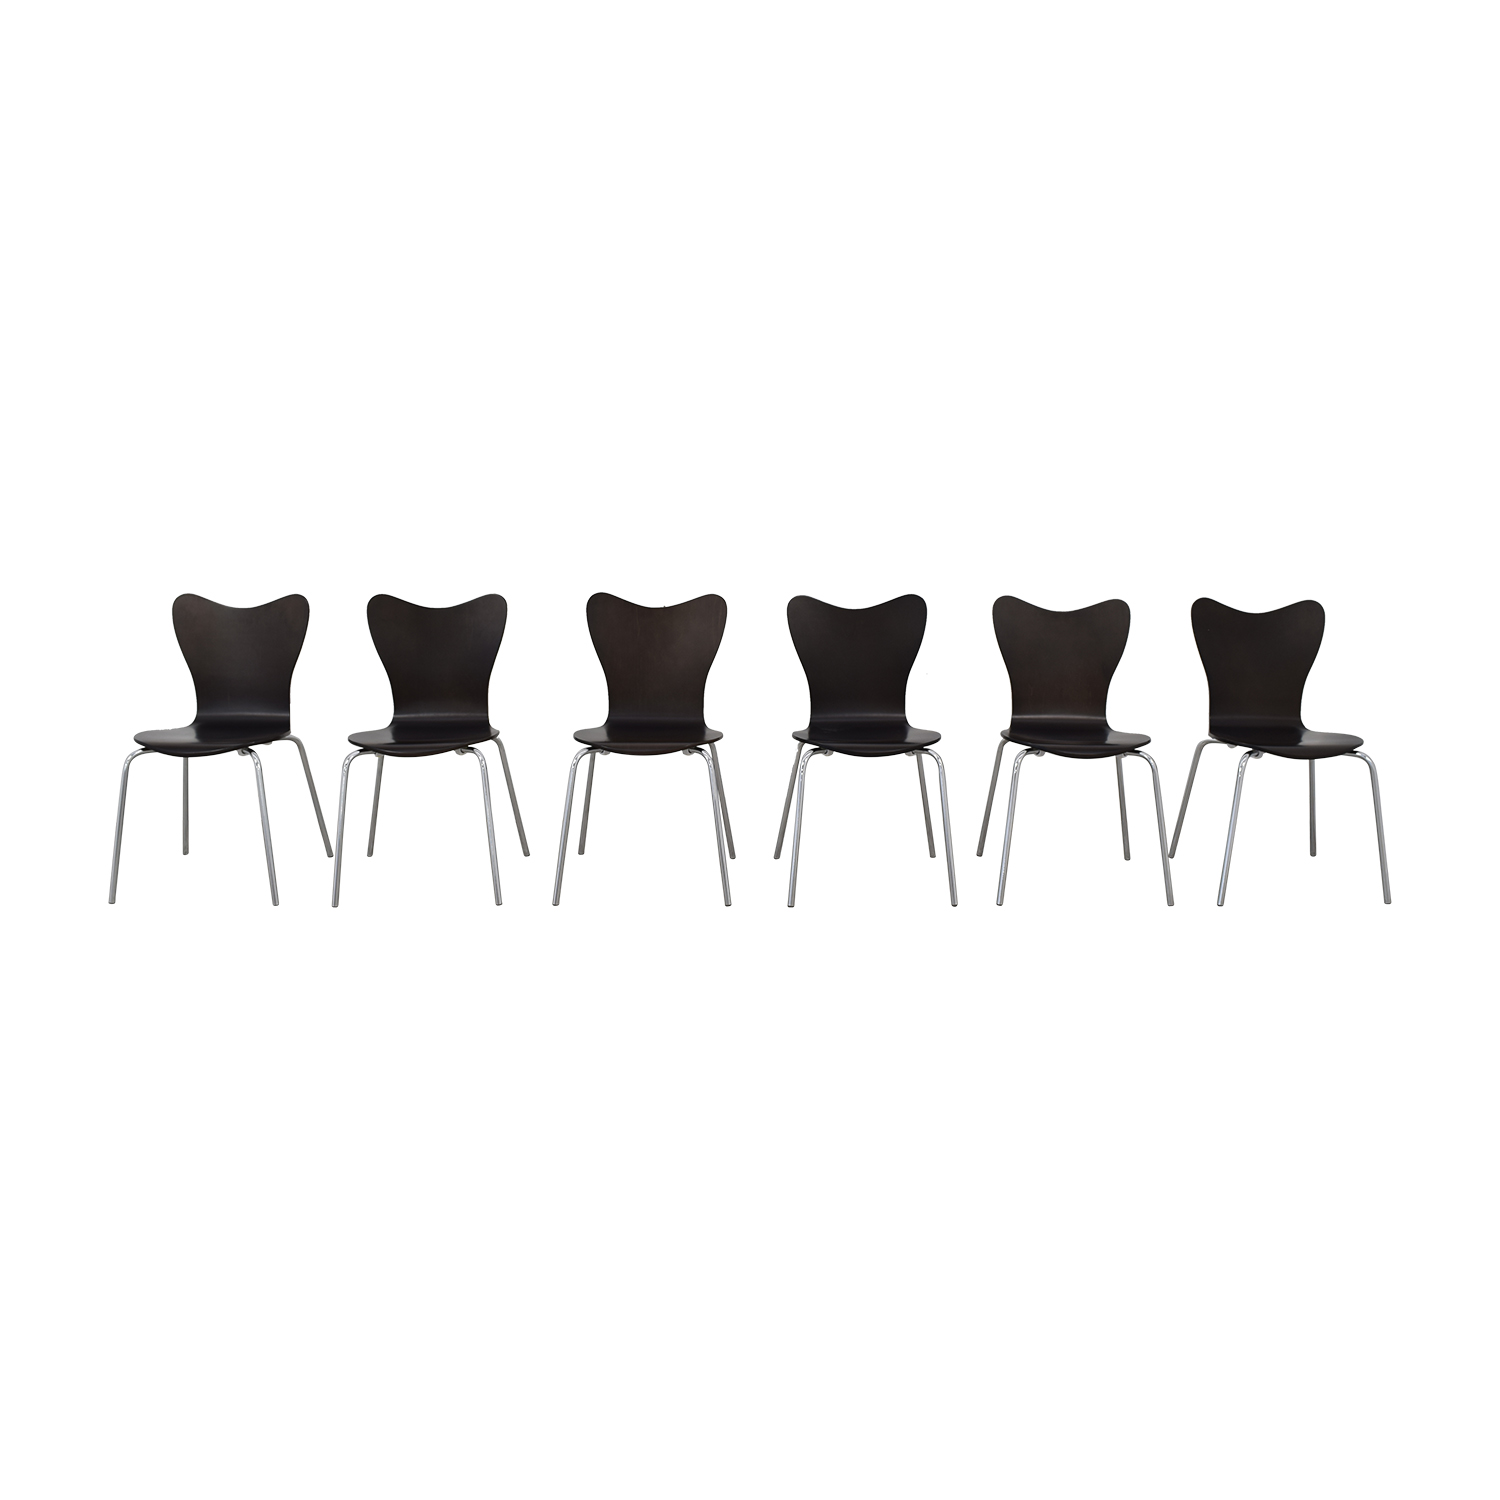 West Elm West Elm Scoop Back Dining Chairs on sale